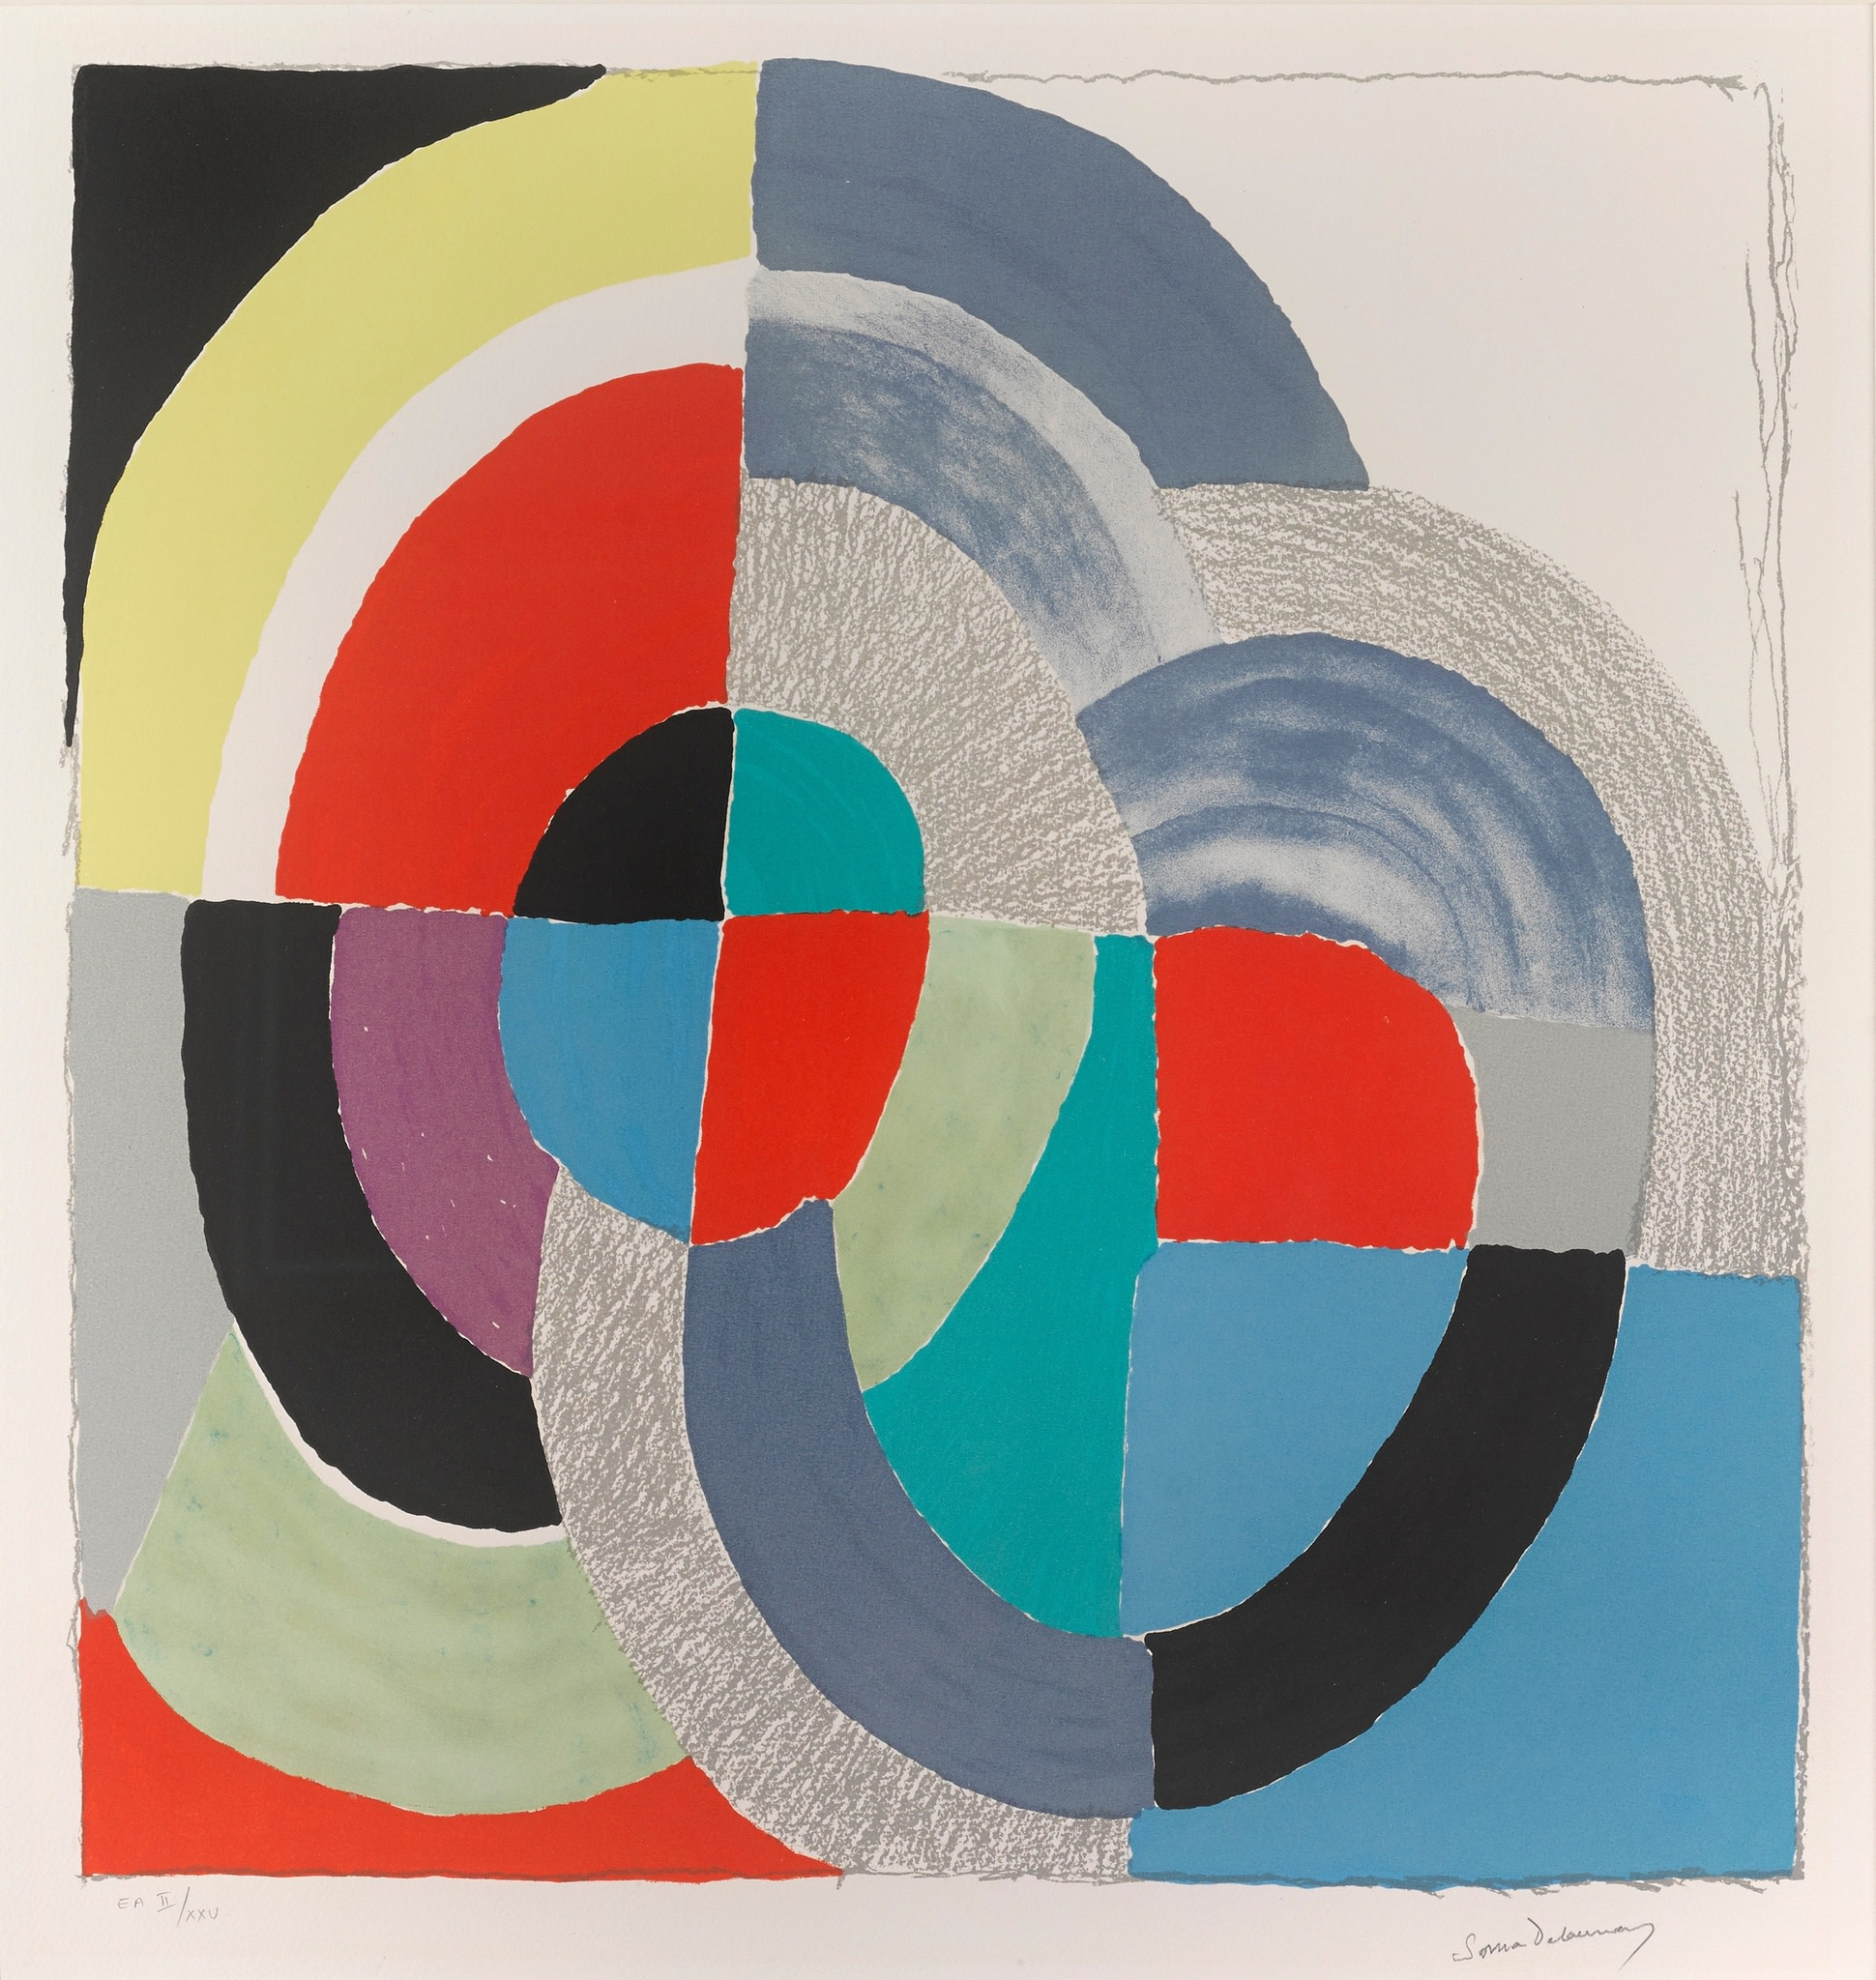 "<span class=""link fancybox-details-link""><a href=""/artists/39-sonia-delaunay/works/categories/189/"">View Detail Page</a></span><div class=""artist""><strong>Sonia Delaunay</strong></div> 1885 - 1979 <div class=""title""><em>Russian Easter</em>, 1970</div> <div class=""signed_and_dated"">Signed in pencil lower right</div> <div class=""medium"">Coloured lithograph</div> <div class=""dimensions"">24 3/4 x 31 1/8 in<br /> 63 x 79 cm</div> <div class=""edition_details"">E.A II/XXV (epreuve d'artist/artist's proof)</div><div class=""copyright_line"">Copyright The Artist</div>"